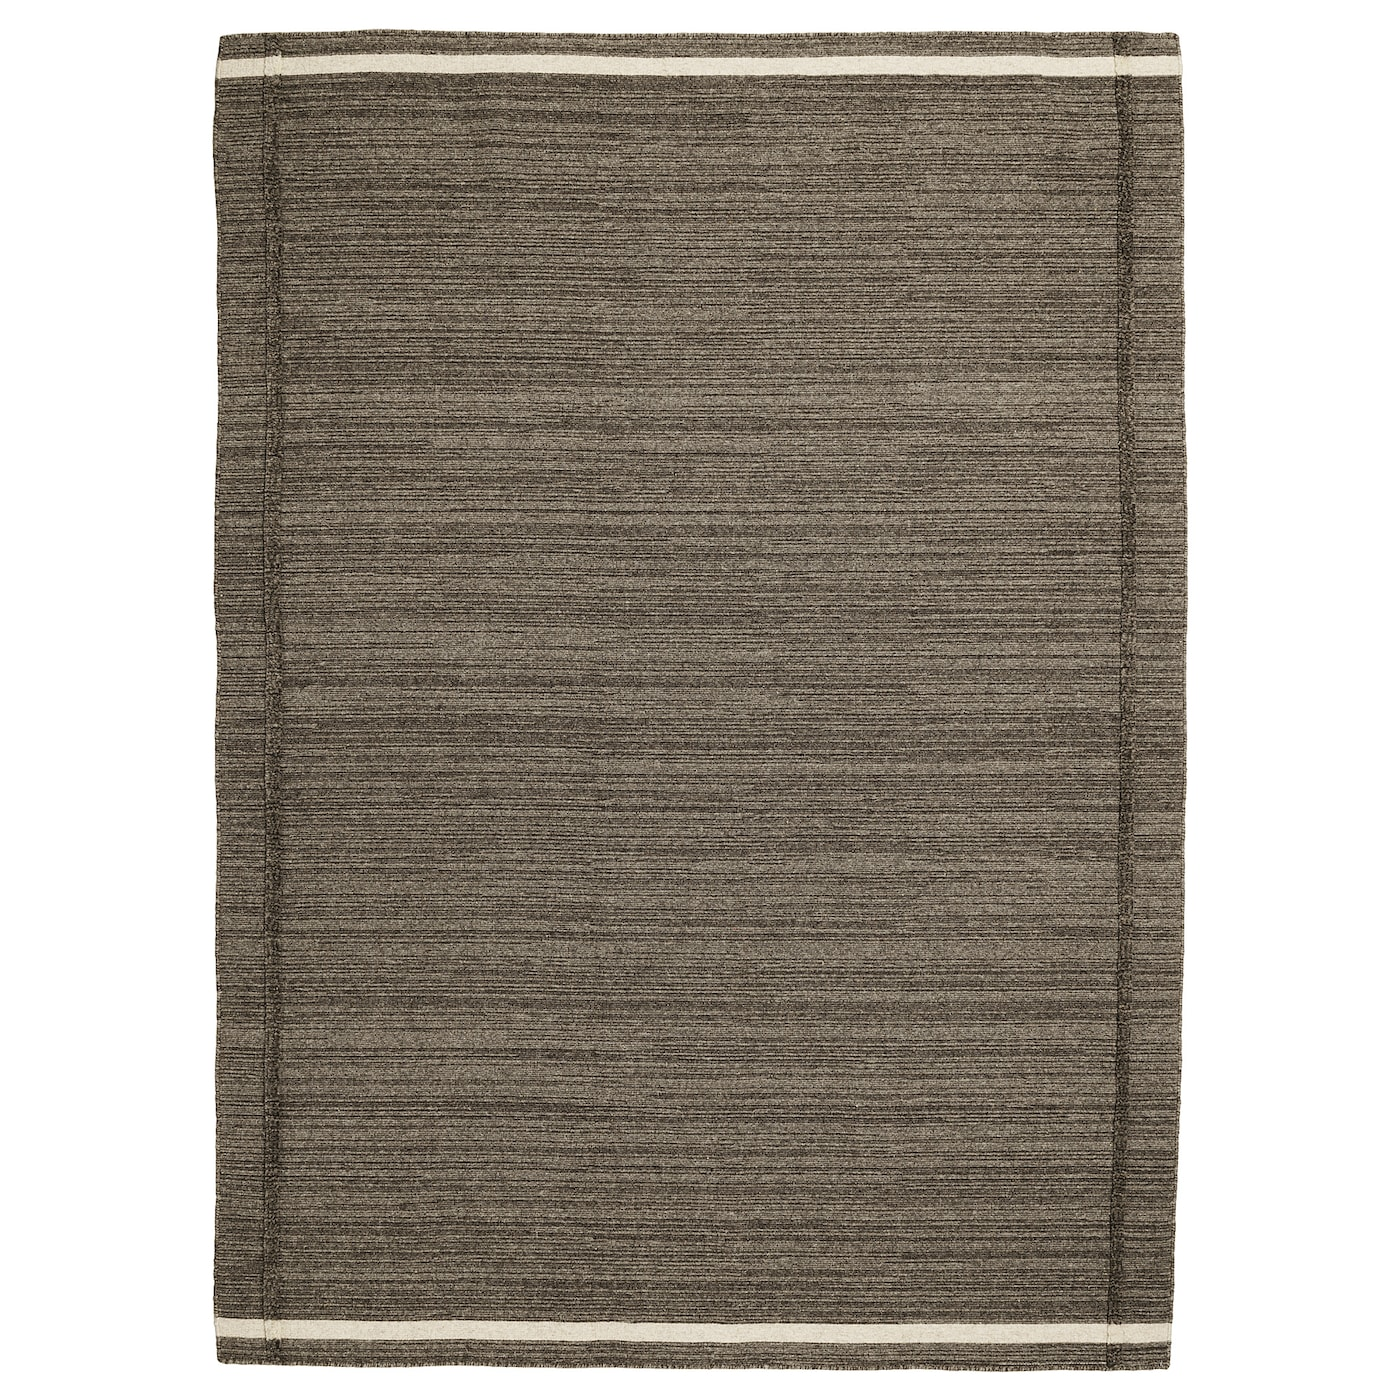 Ikea HÖjet Rug Flatwoven The Is Made Of Wool So It S Naturally Soil